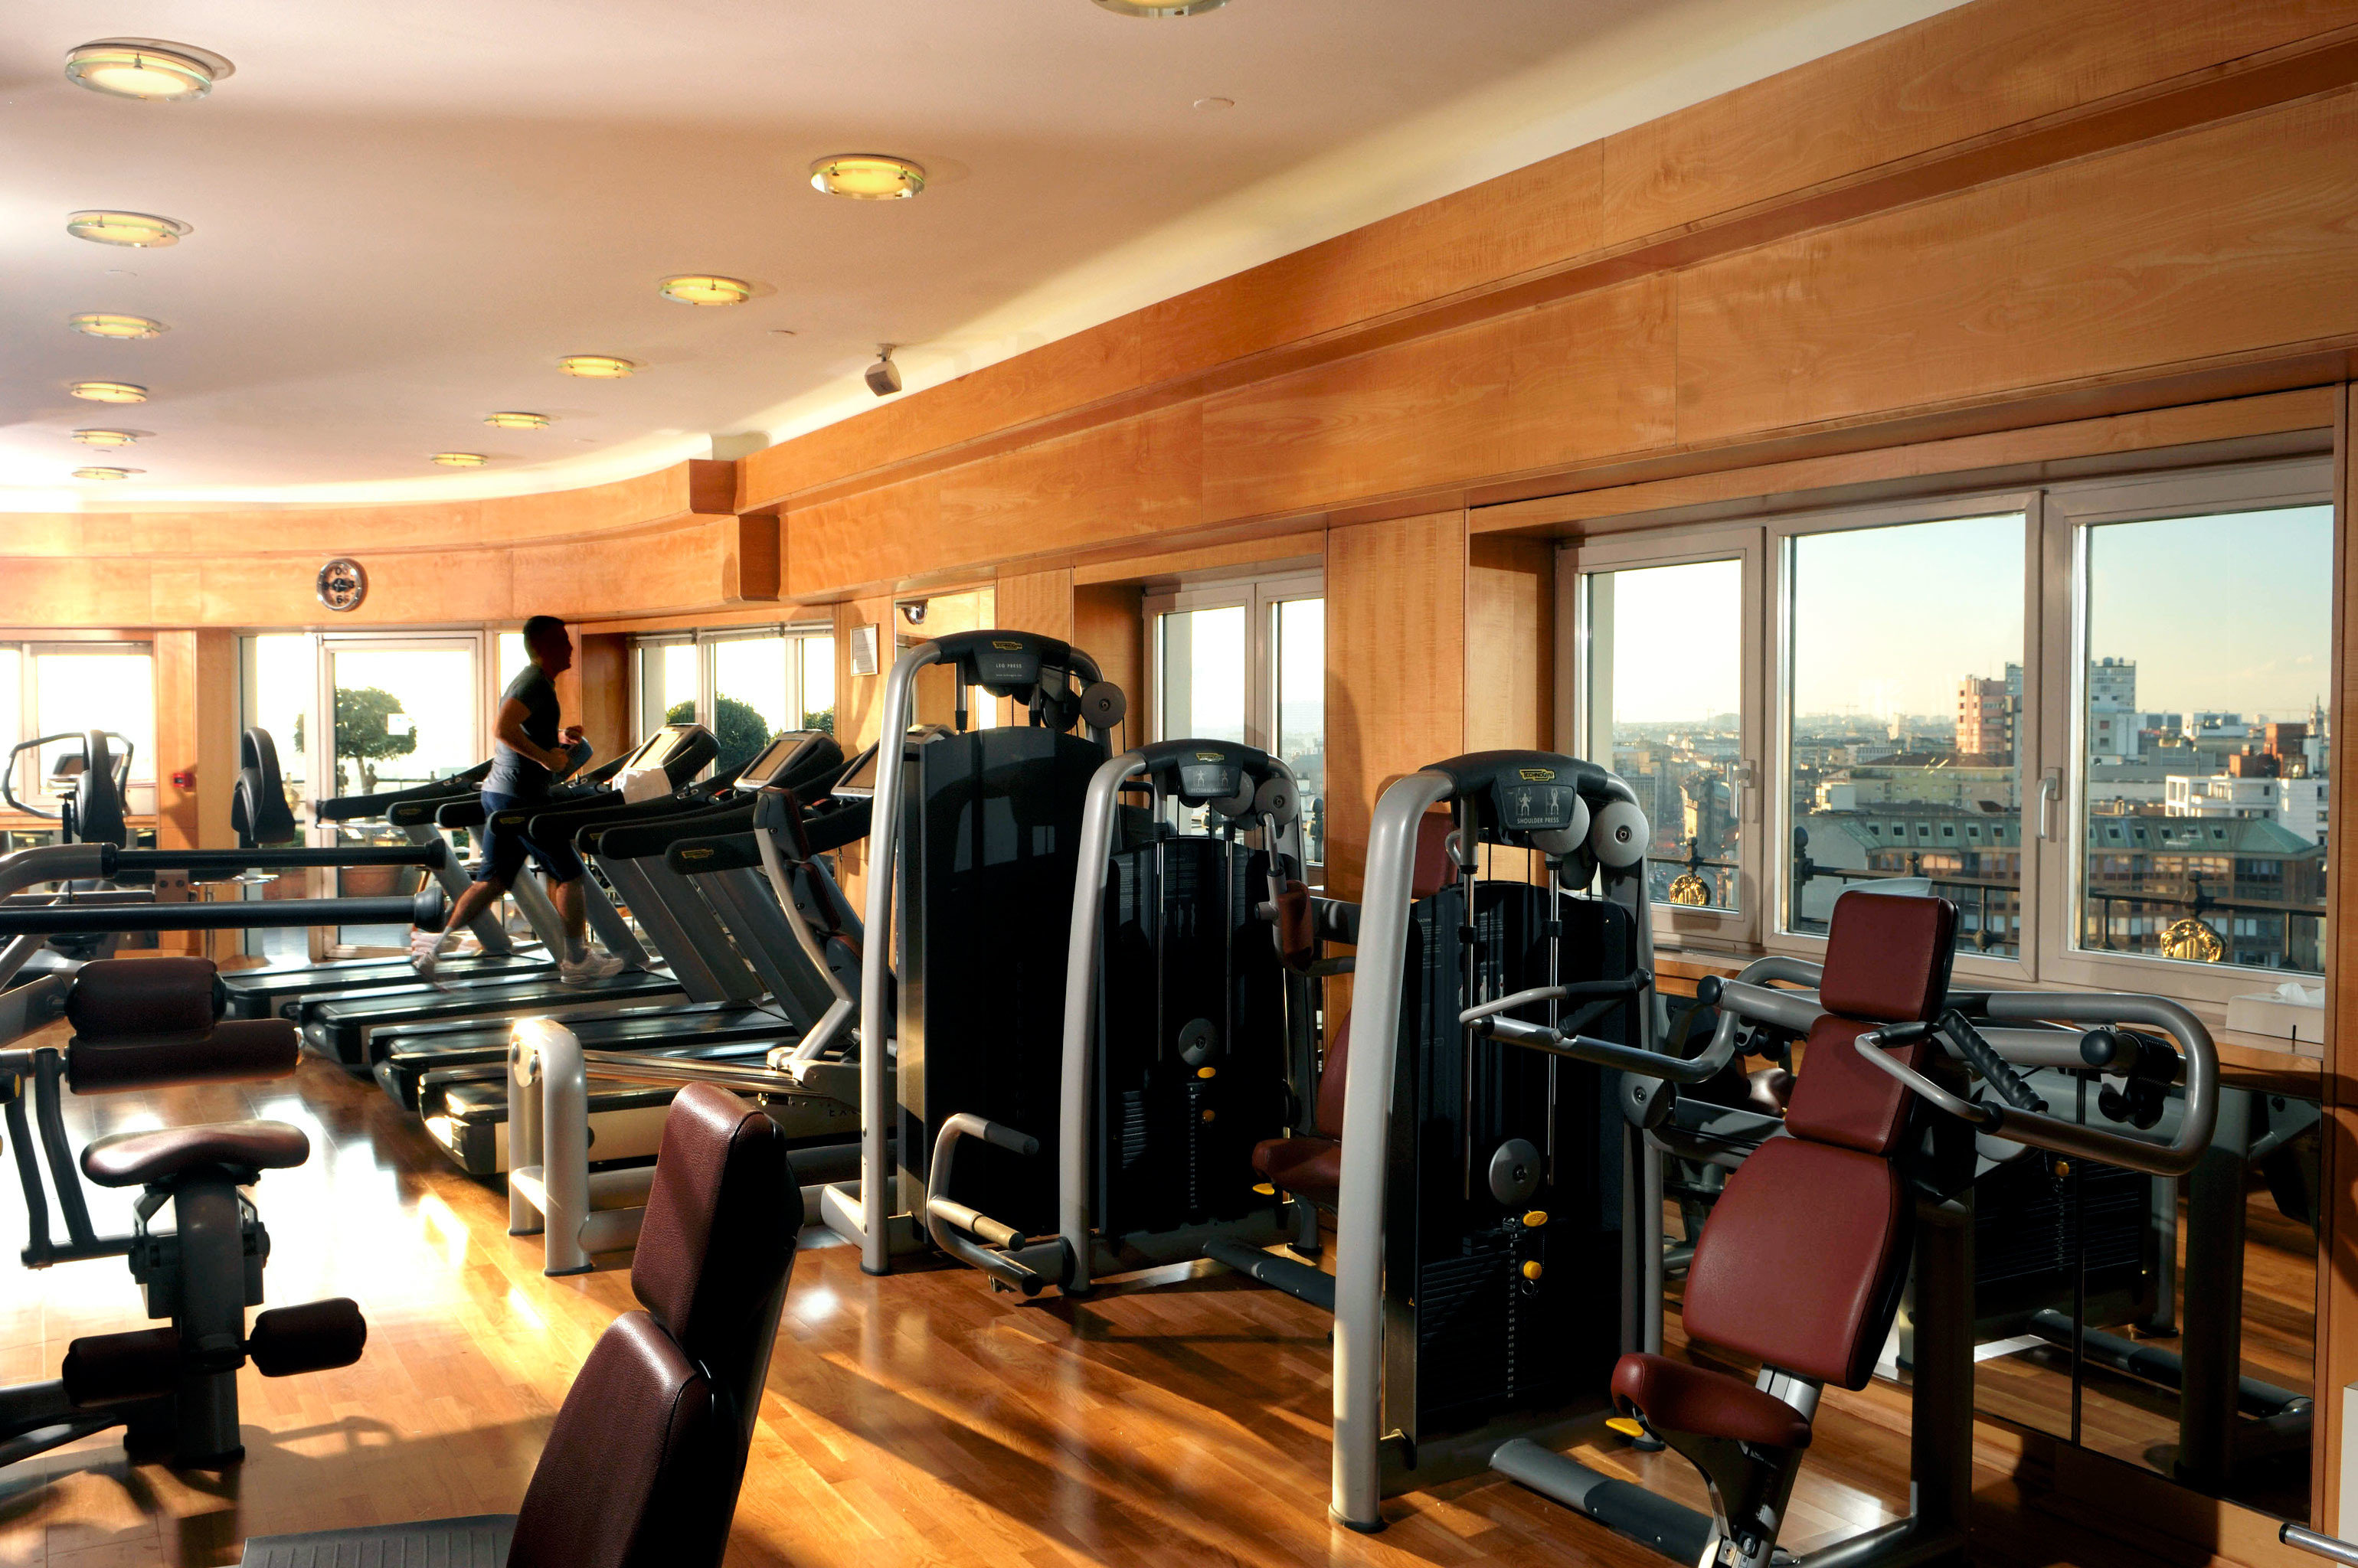 City Fitness Historic Luxury Scenic views structure sport venue gym office condominium cluttered